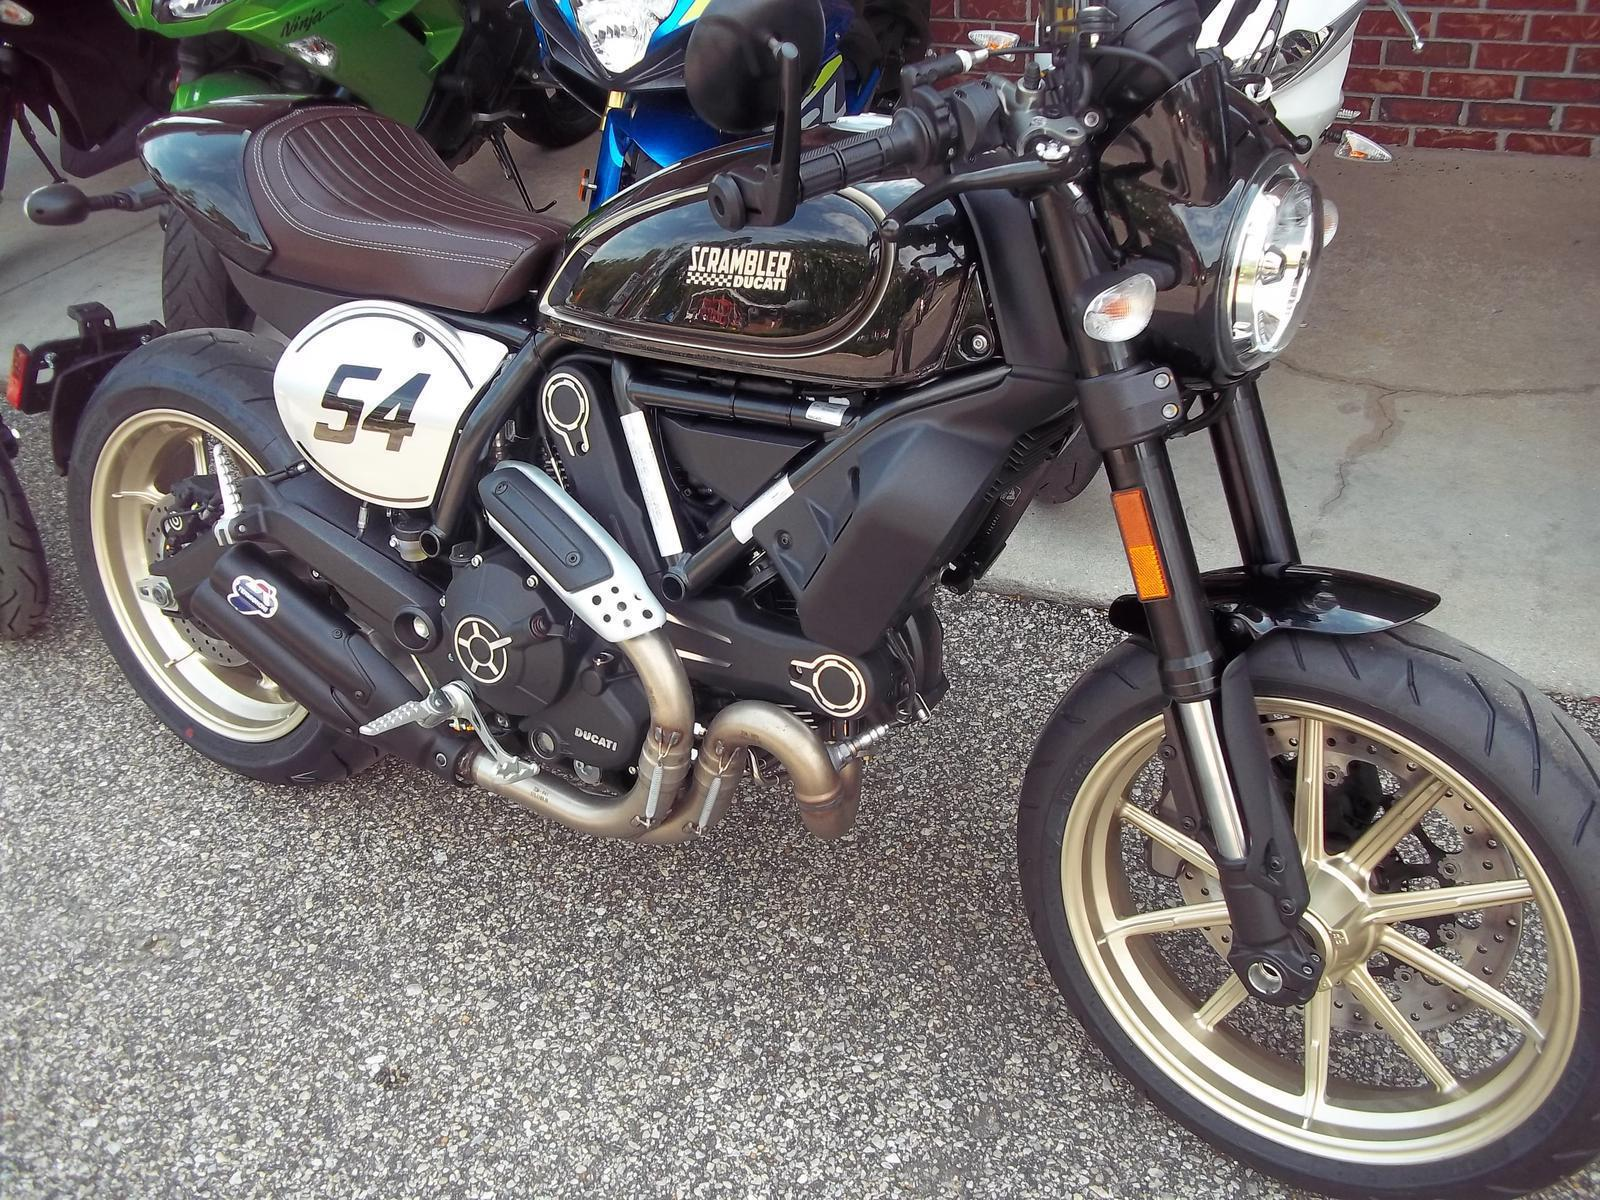 2017 Ducati SCRAMBLER CAFE RACER For Sale In Tallahassee FL